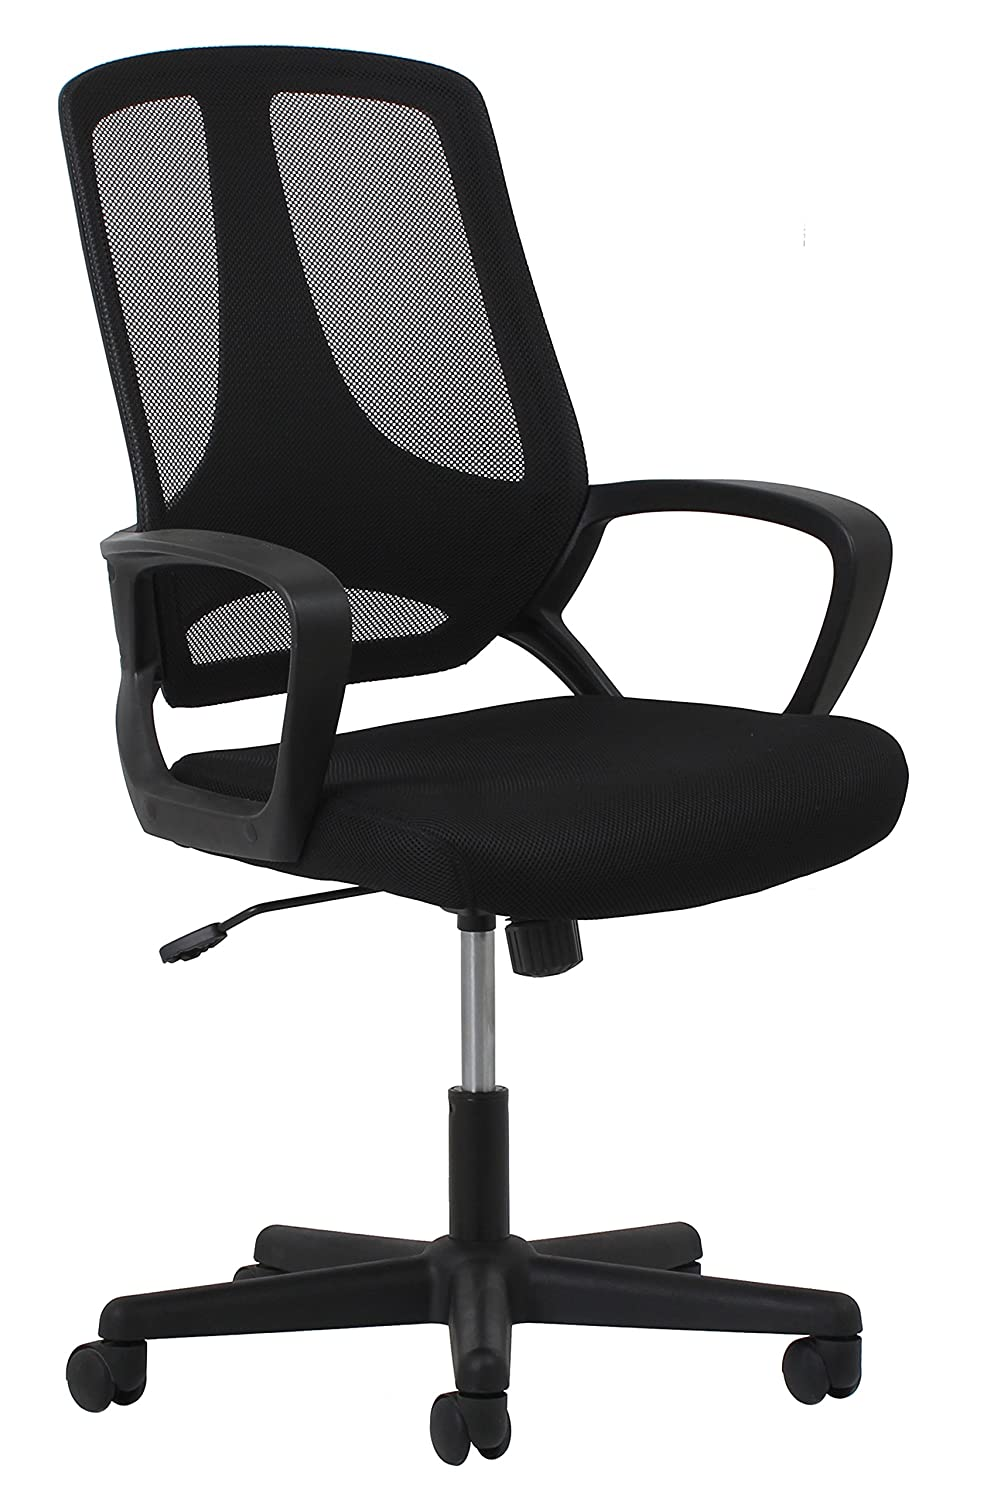 Essentials Swivel Mesh Task Chair with Arms – Ergonomic Computer Office Chair